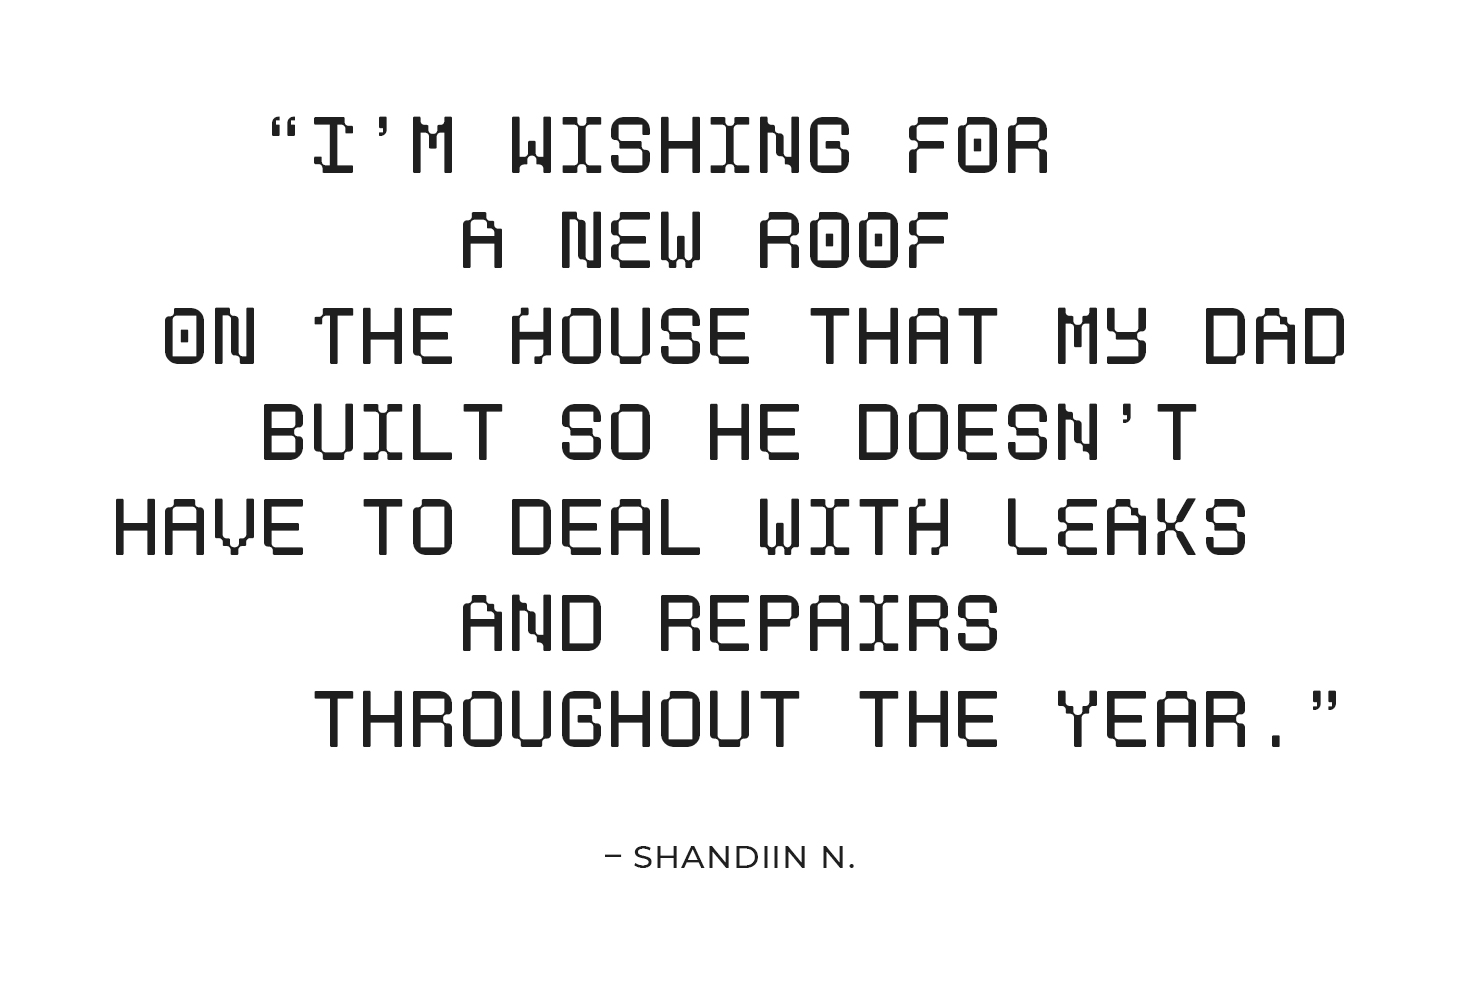 """""""I'm wishing for a new roof on the house that my dad built so he doesn't have to deal with leaks and other fixes on his own throughout the year."""" – Shandiin N."""